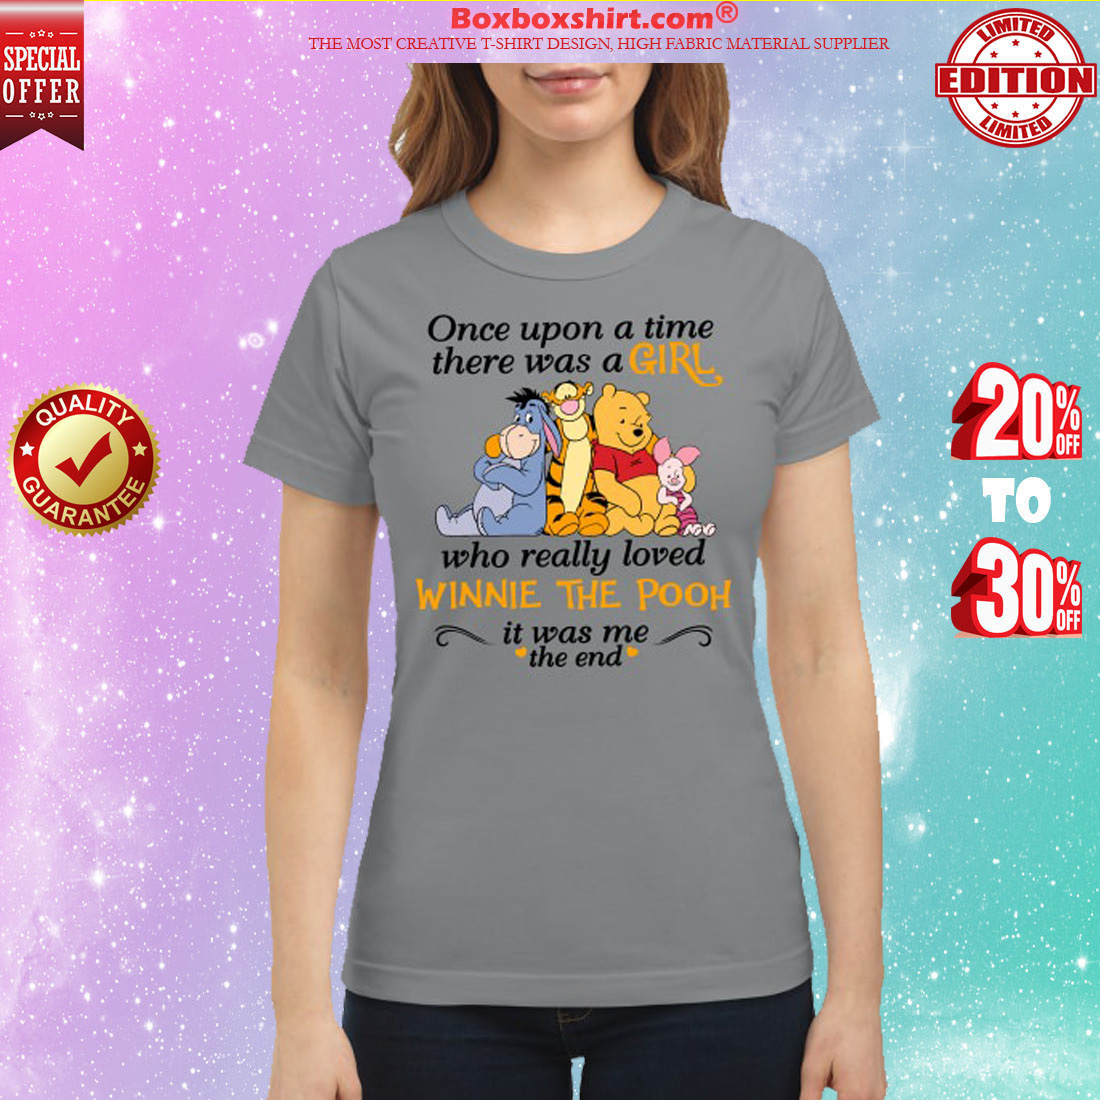 Once upon a time there was a girl who really loved Winnie the pooh it was me the end classic shirt